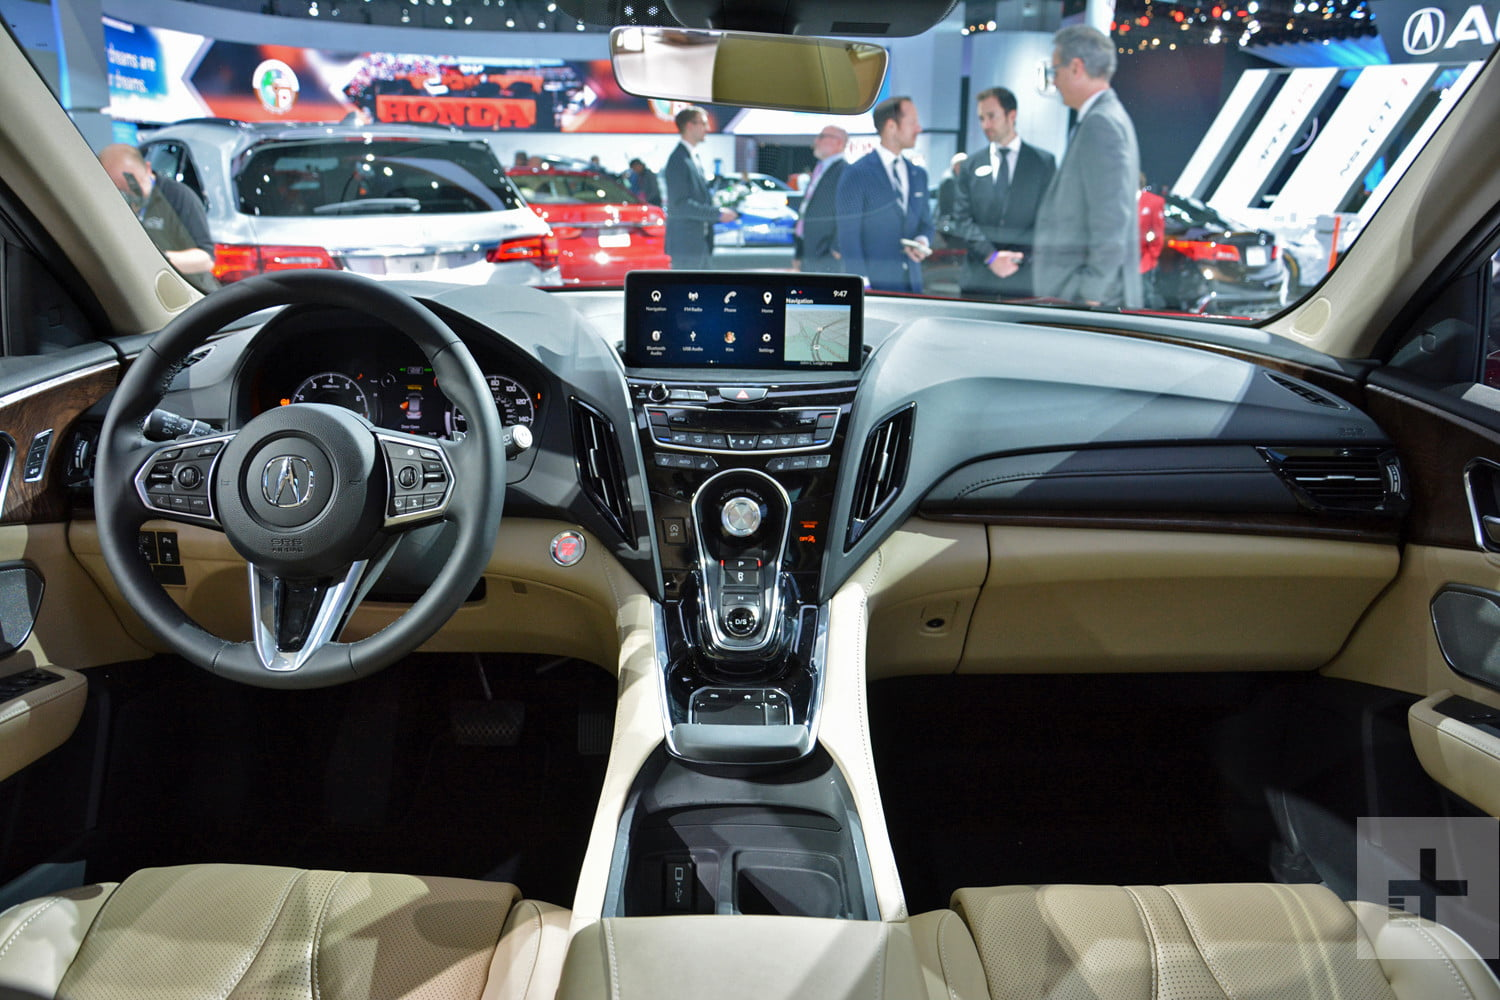 acura true touchpad infotainment system review rg rdx prototype 1